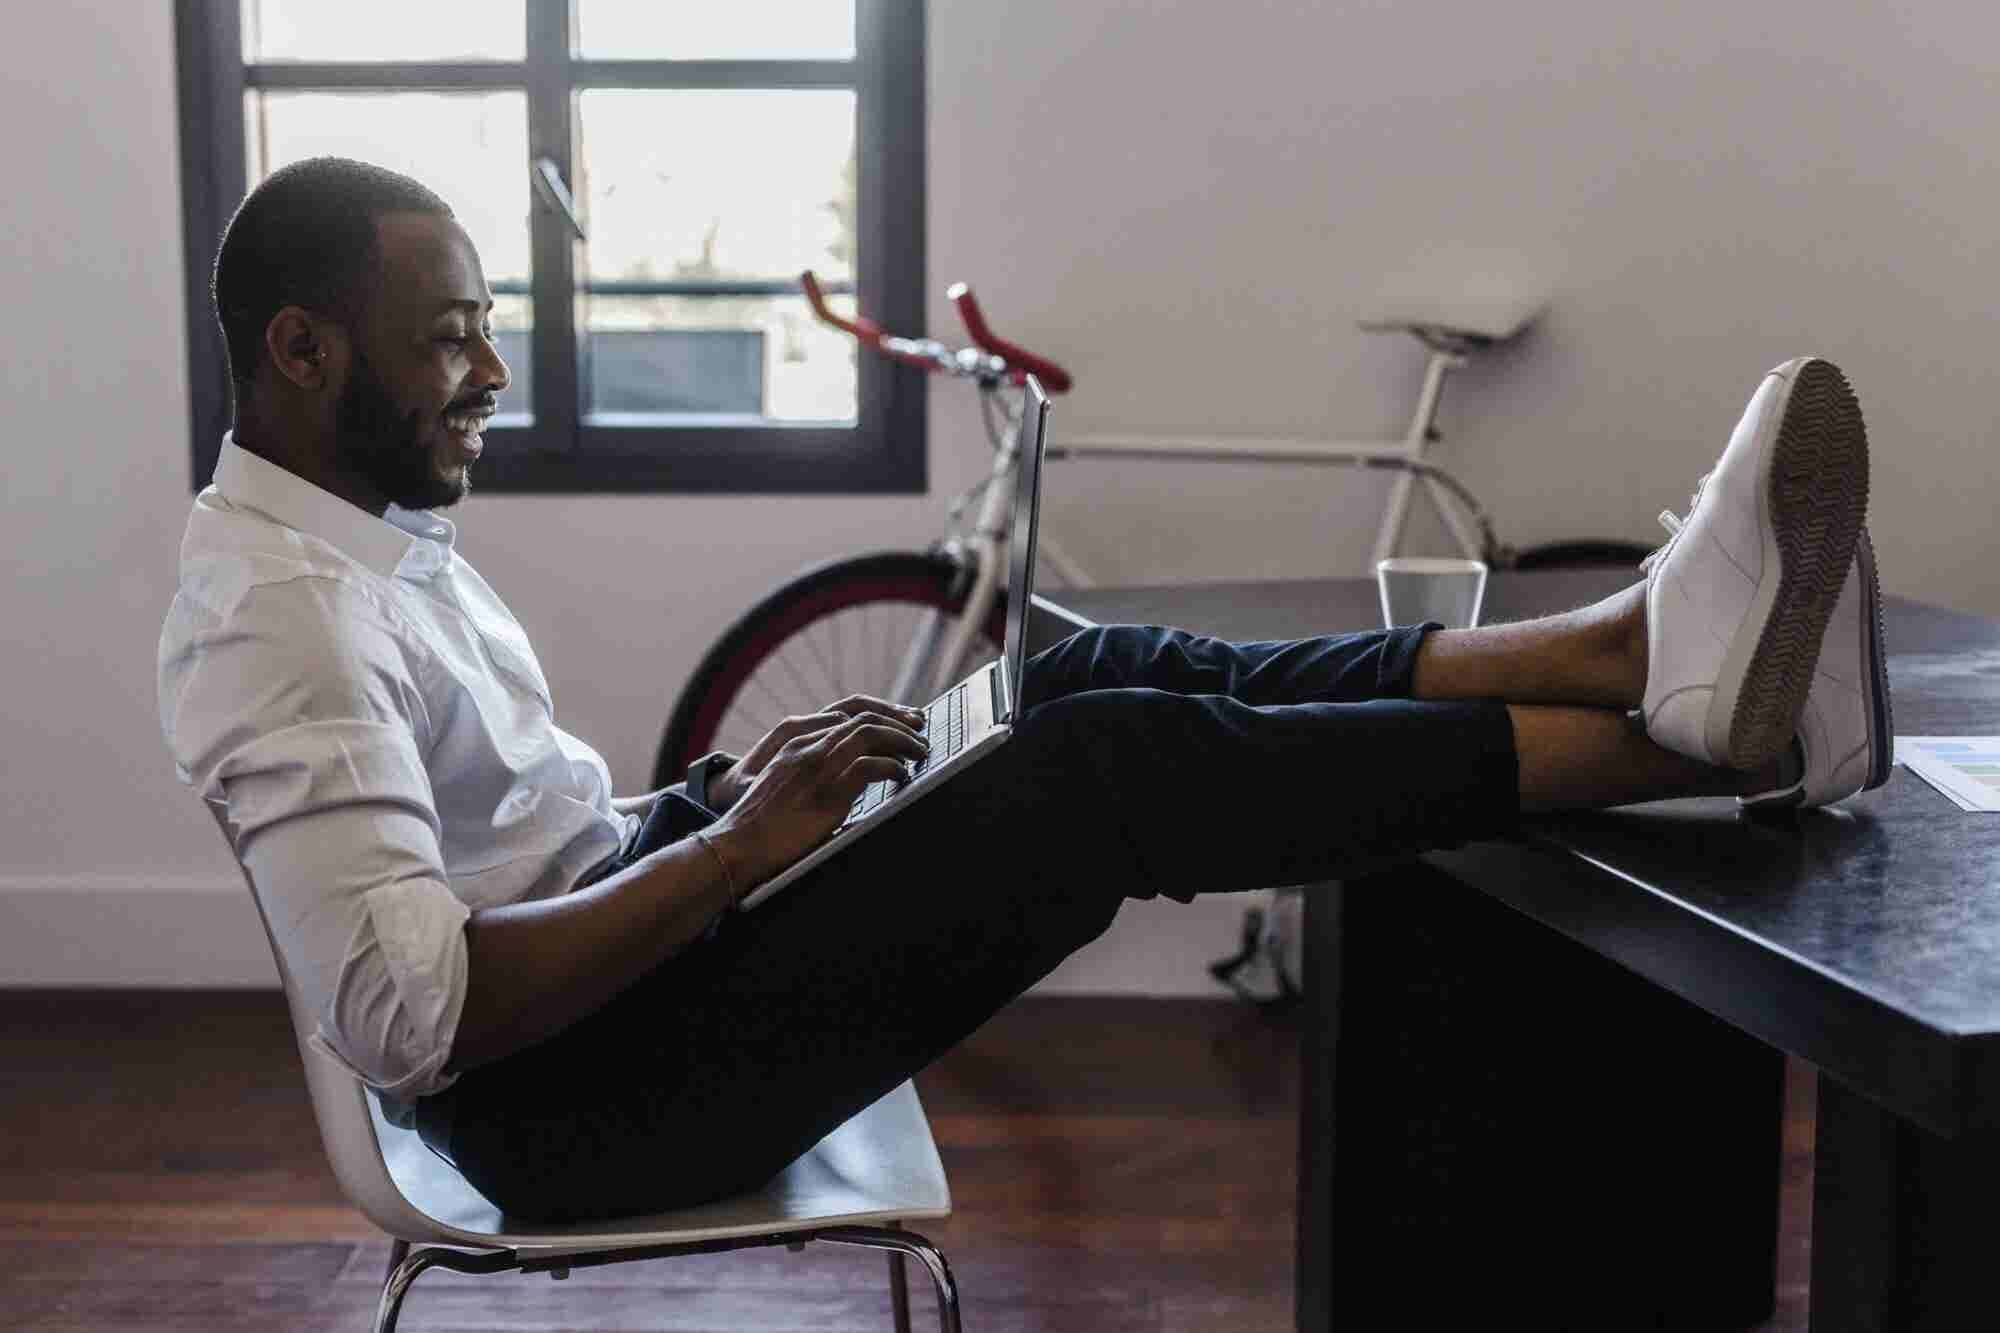 How to Leverage Your Skills to Start a Side Business